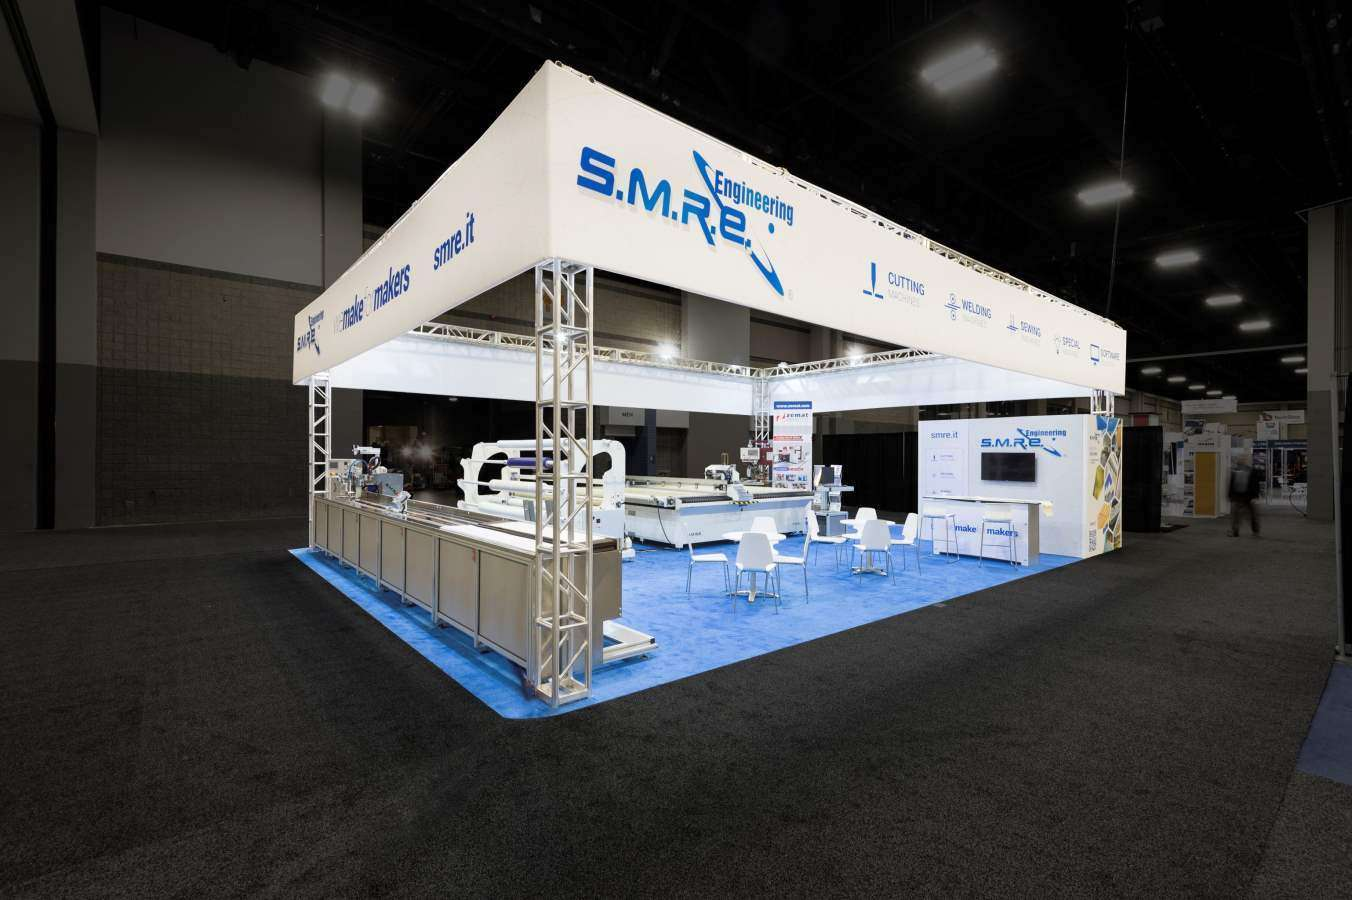 30x40 rental exhibit for smre at IFAI, Charlotte